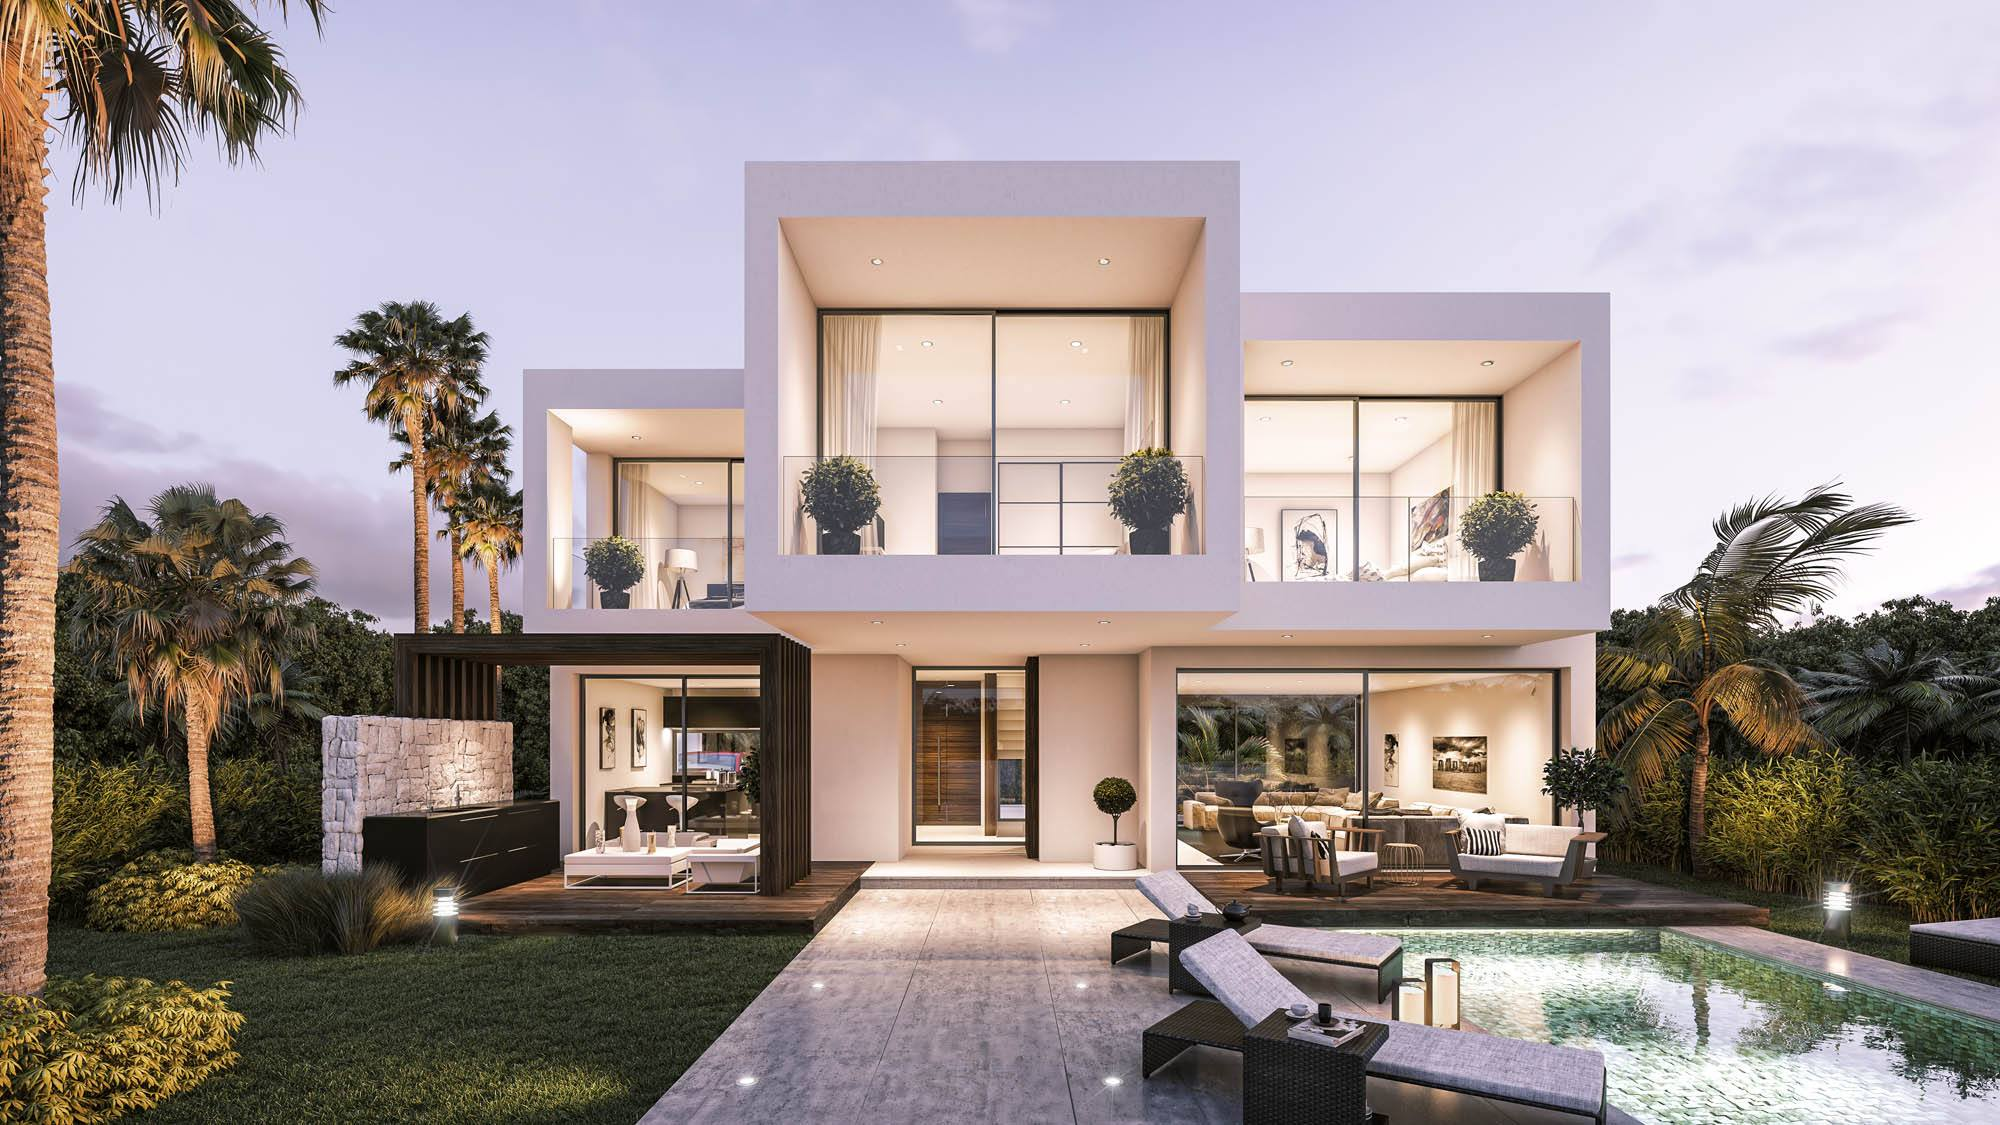 101 luxury villas in Estepona.